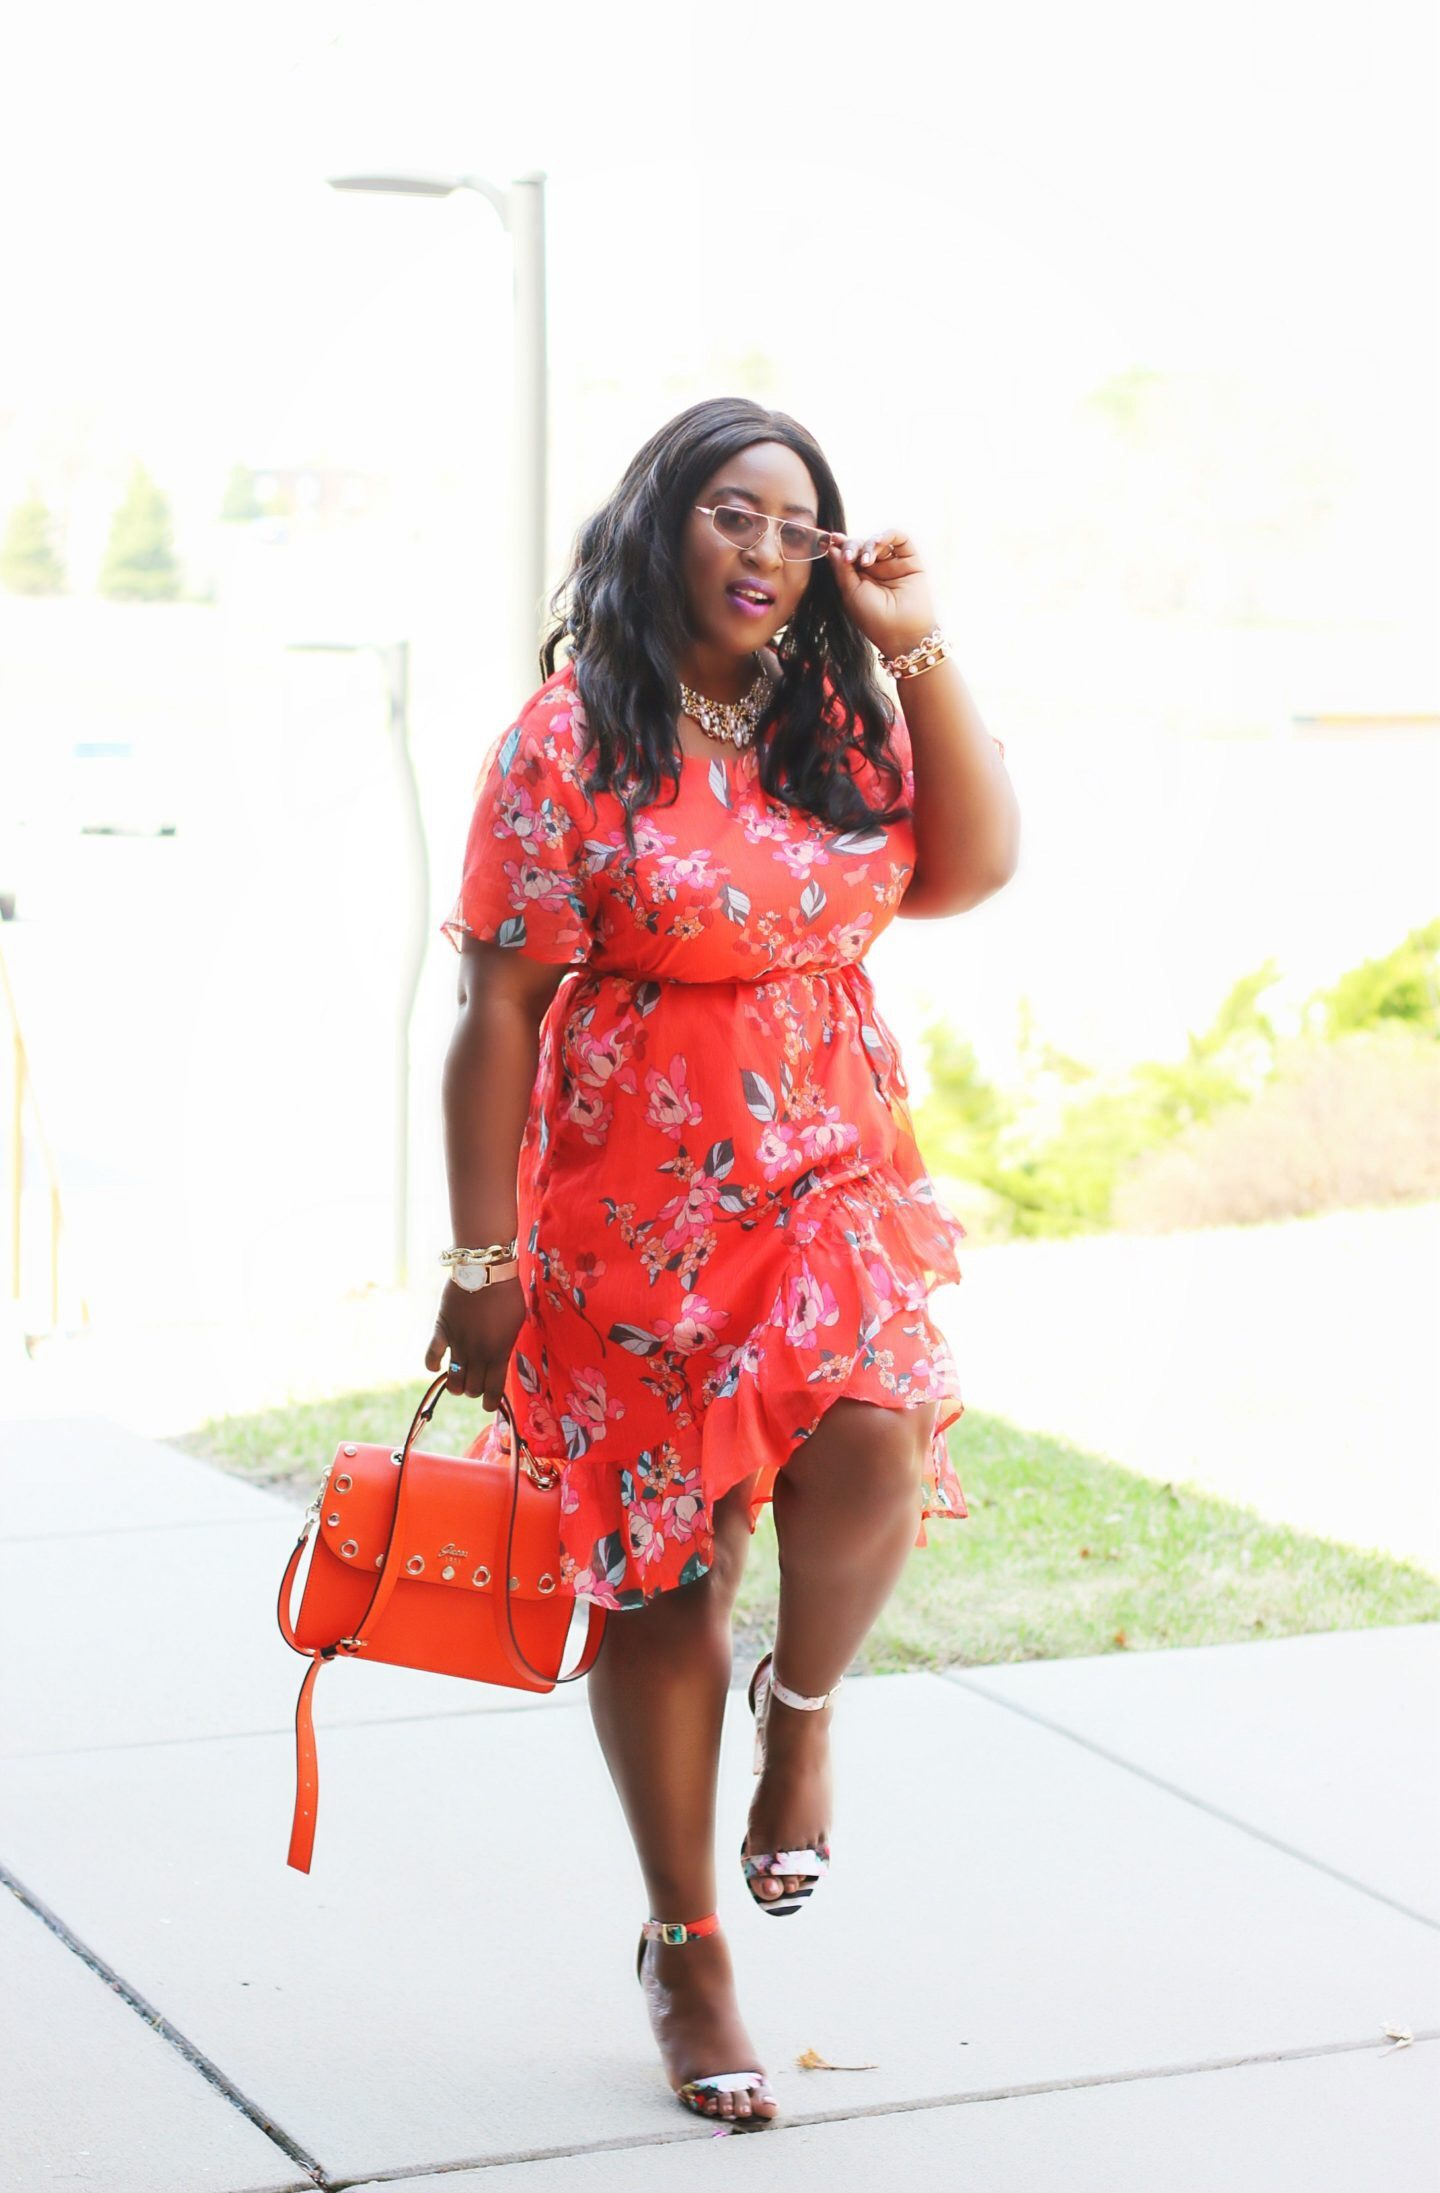 Black women in cute orange floral spring dress